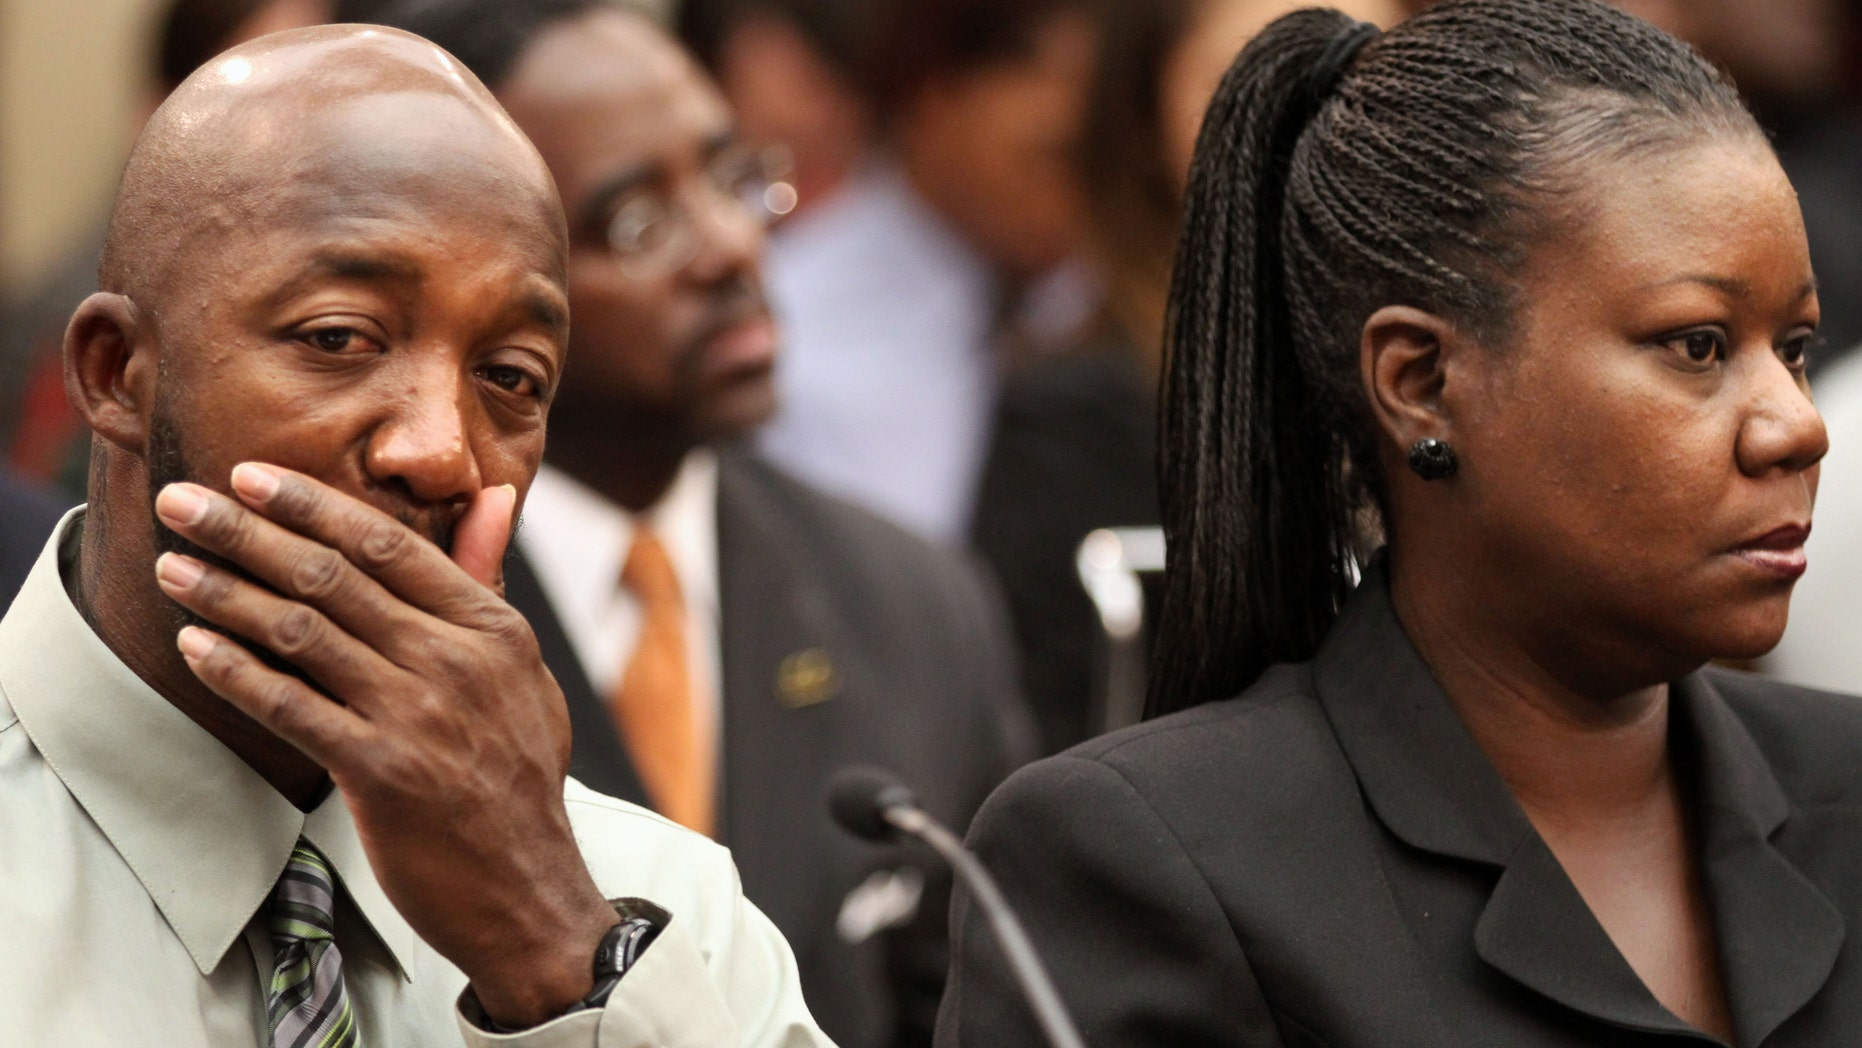 Trayvon Martin's parents, father, Tracy Martin, left, and mother Sybrina Fulton attend a House Judiciary Committee briefing on racial profiling and hate crimes, Tuesday, March 27, 2012, on Capitol Hill in Washington. (AP Photo/Jacquelyn Martin)